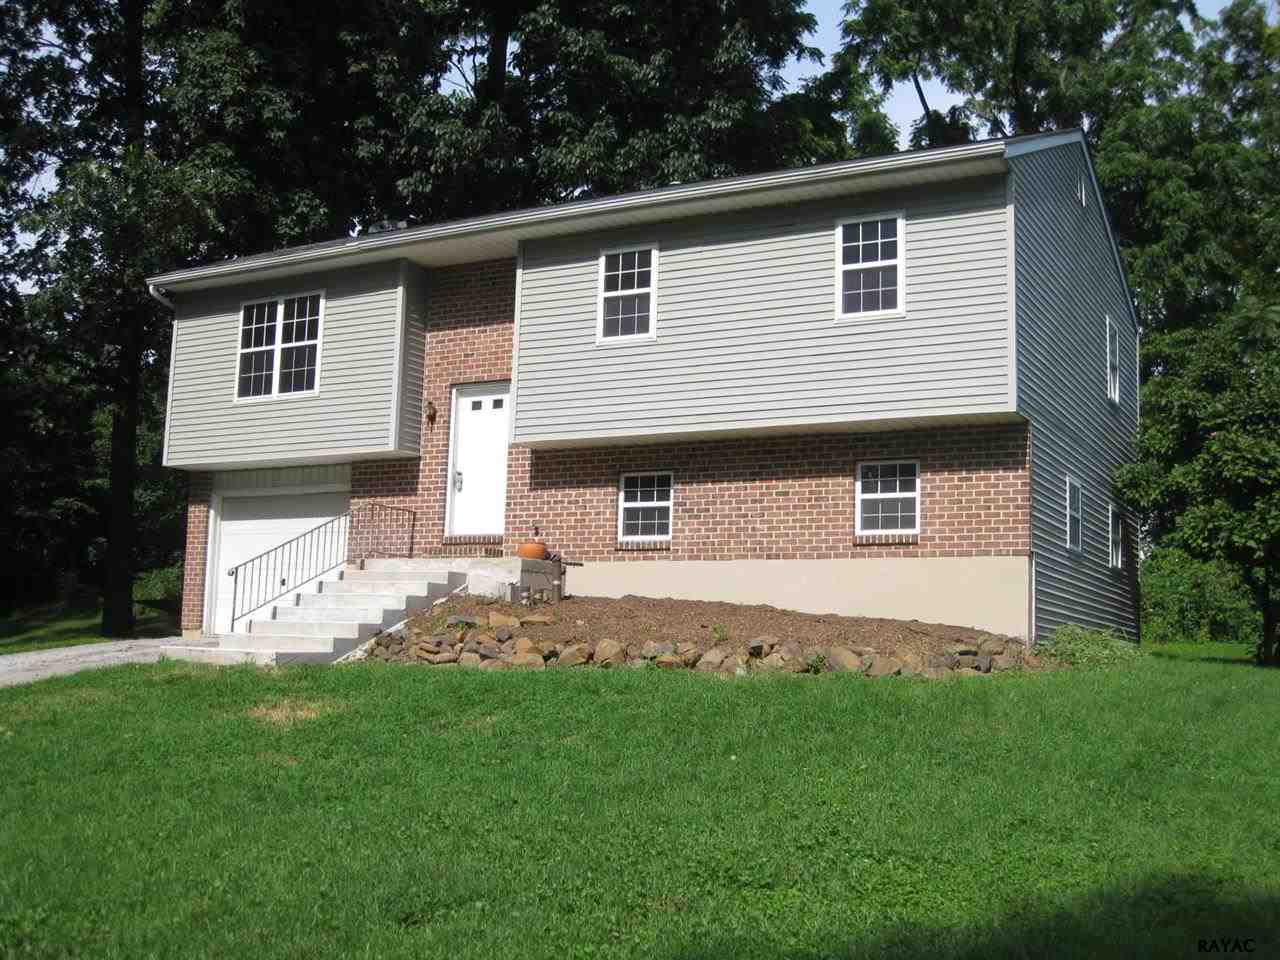 265 Pleasant Acres Rd, York, PA 17402